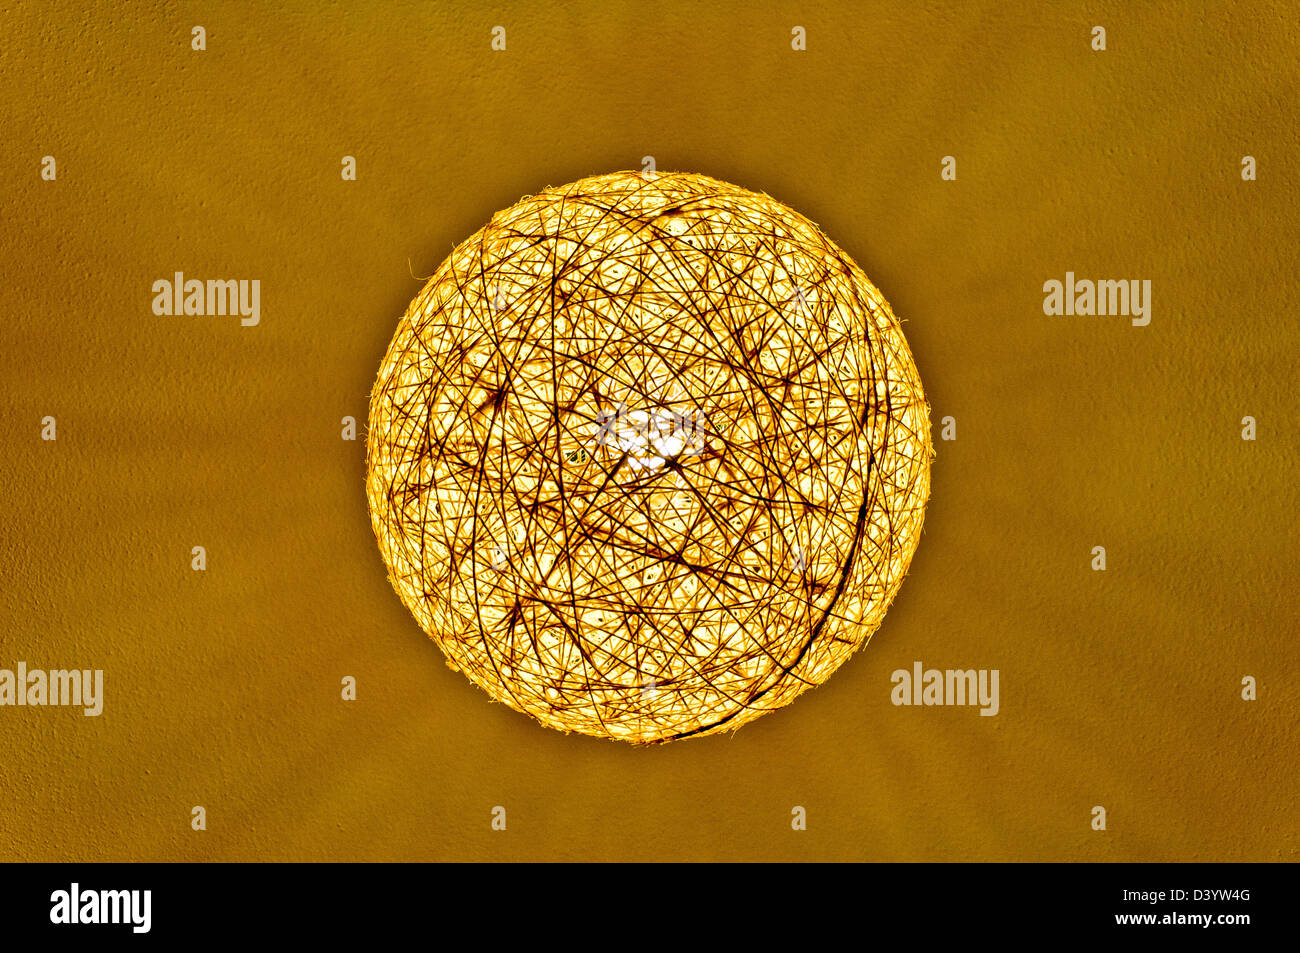 string ball lamp abstraction - Stock Image